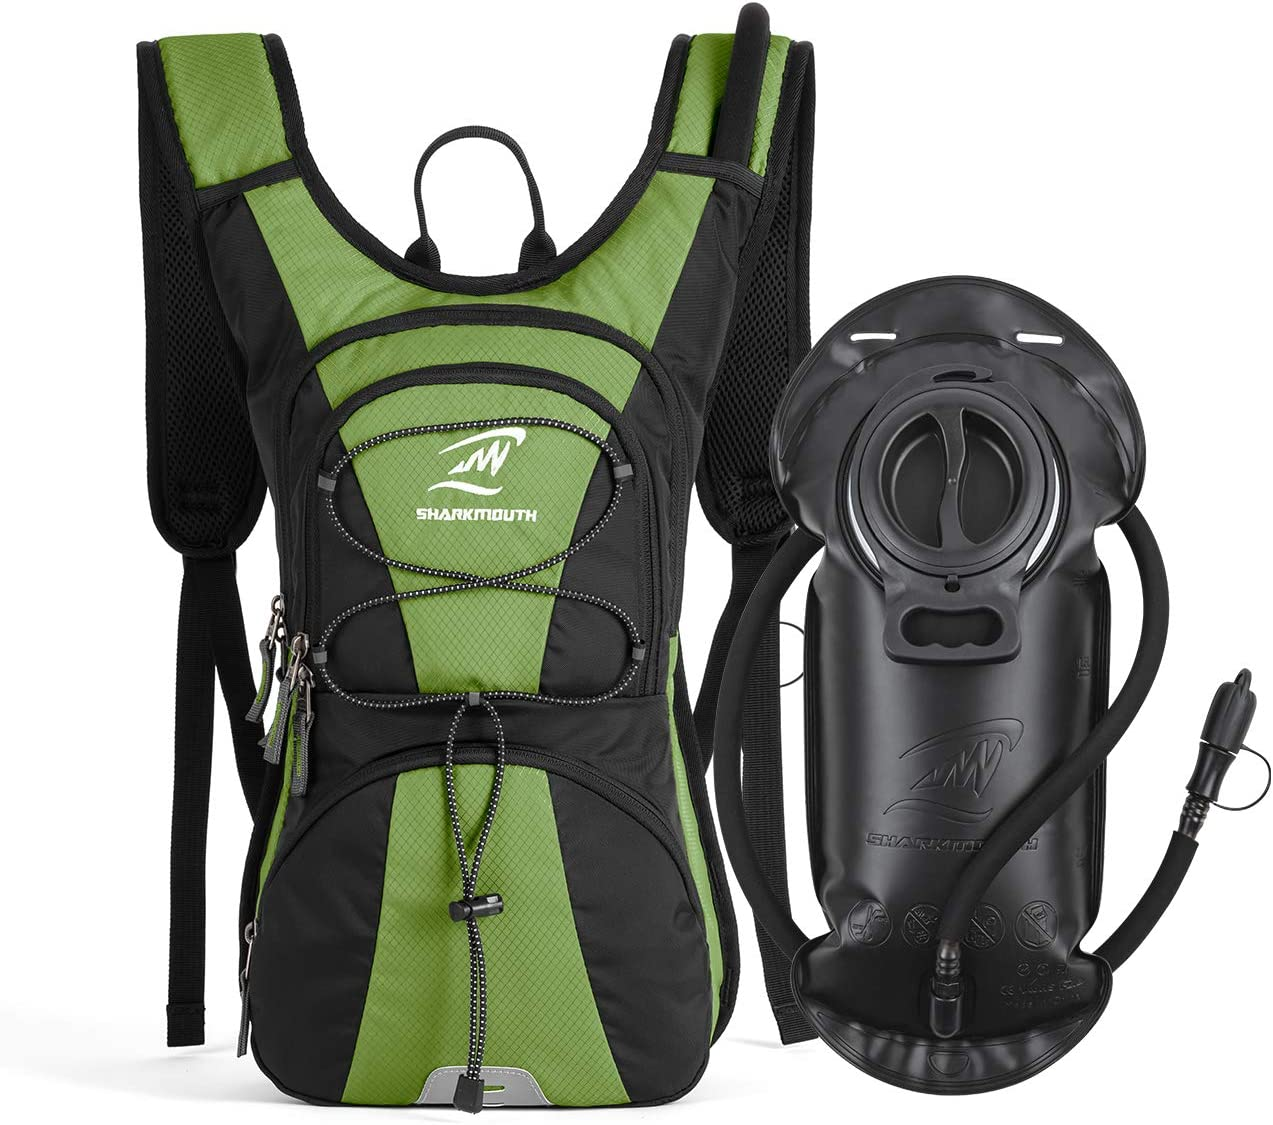 Day Trips and Trails SHARKMOUTH FLYHIKER Hiking Hydration Backpack Pack with 2.5L BPA Free Water Bladder Lightweight and Comfortable for Short Day Hikes